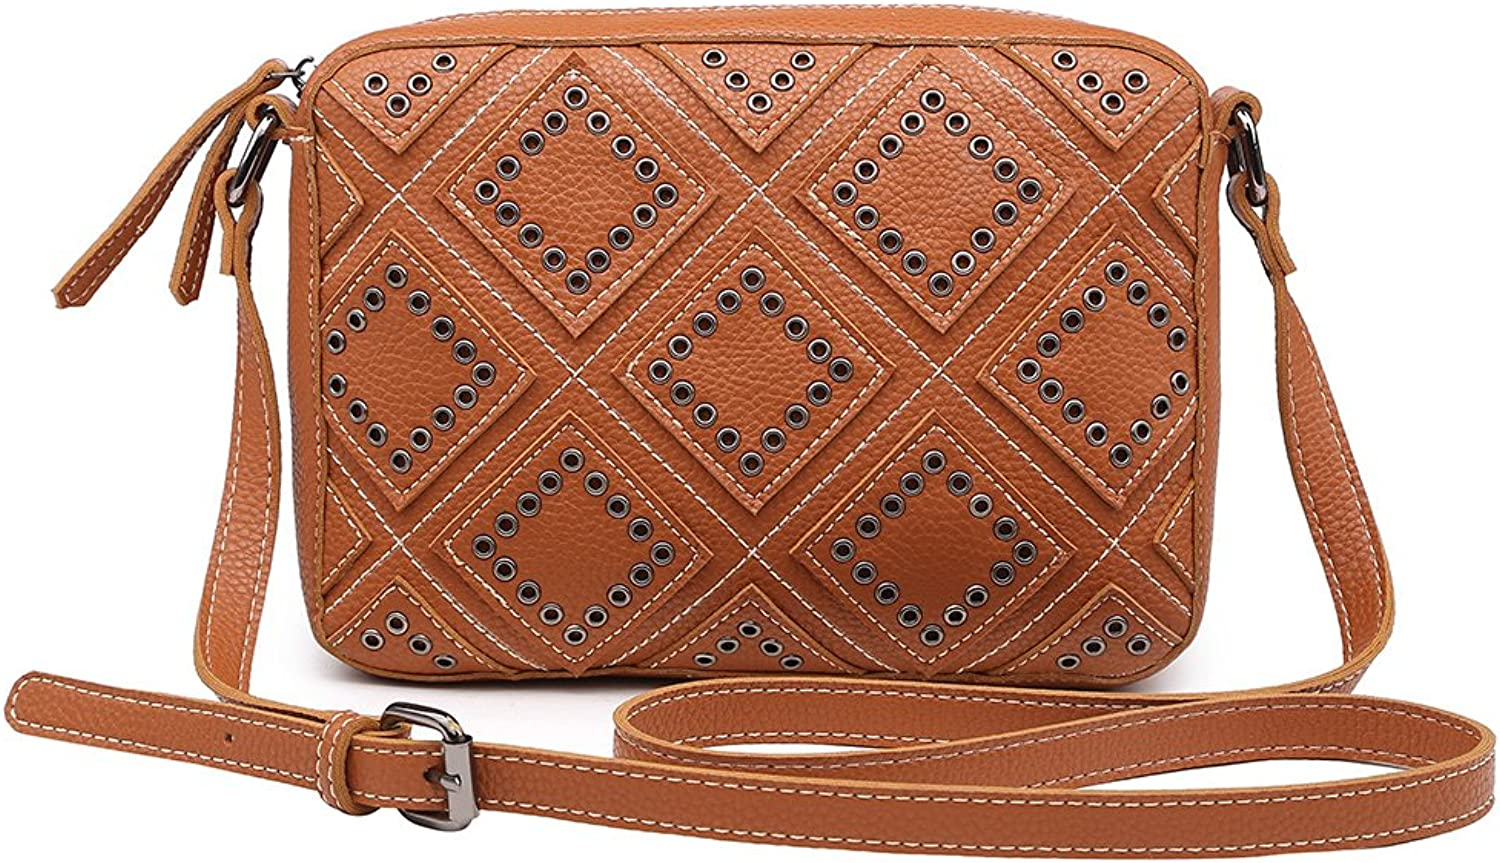 Small crossbody purse for women fashion shoulder bag